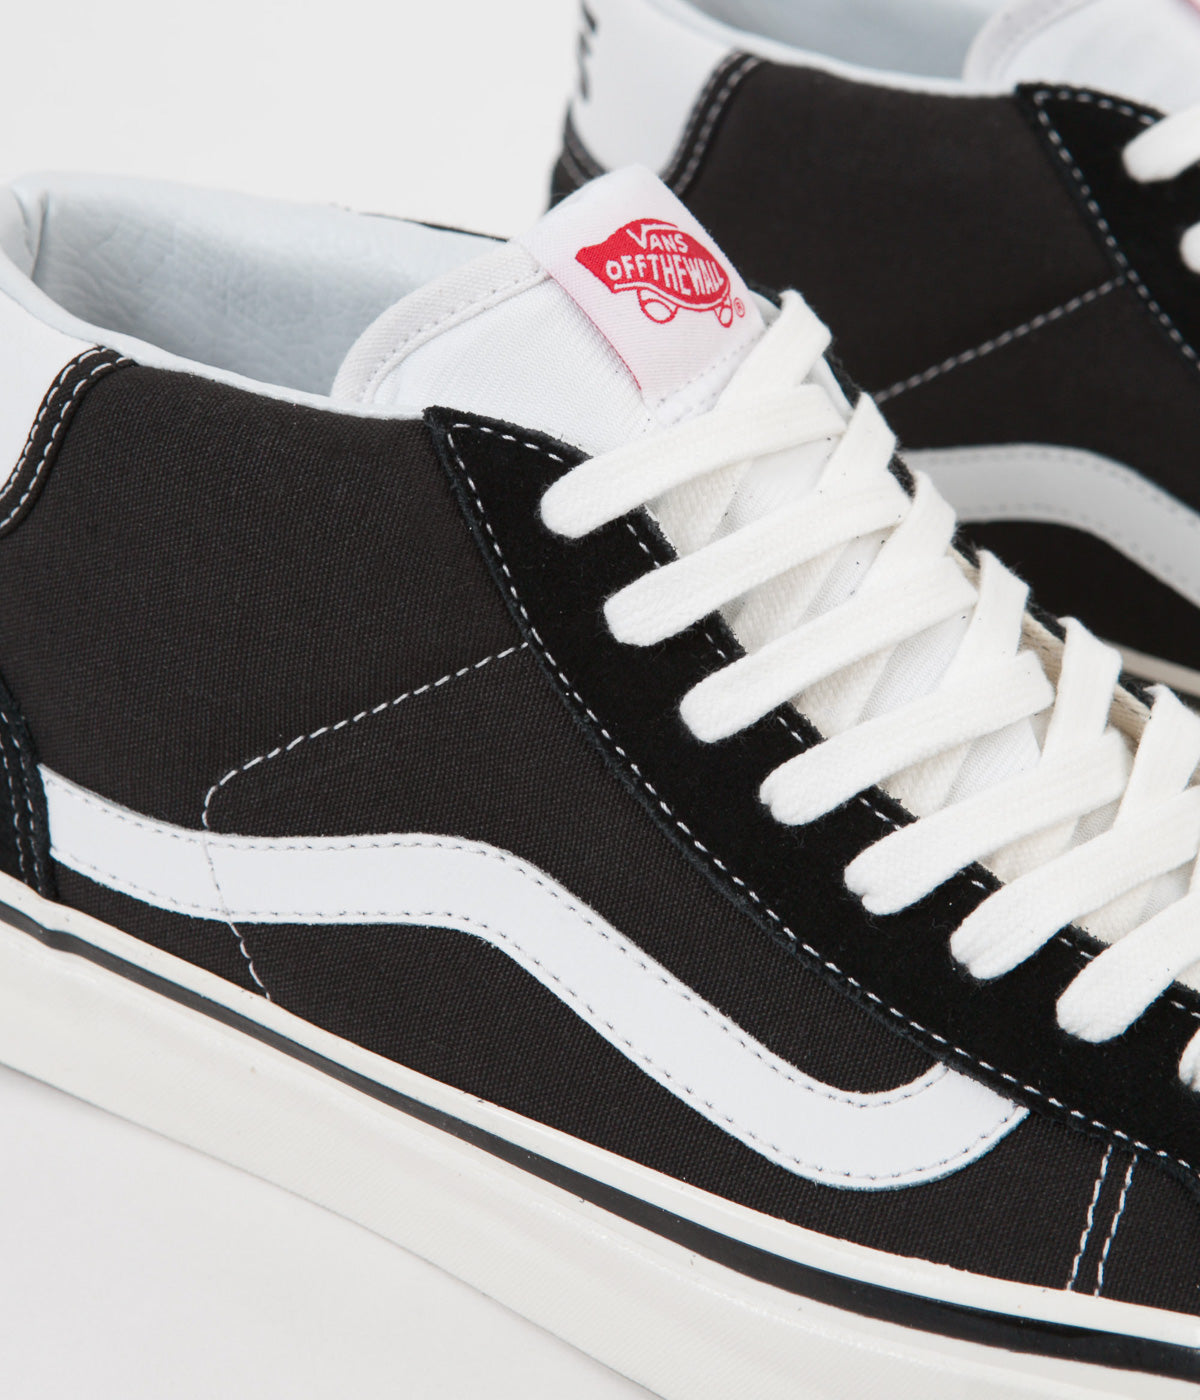 19b53b0a66b6b2 ... Vans Mid Skool 37 DX Anaheim Factory Shoes - Black   White ...